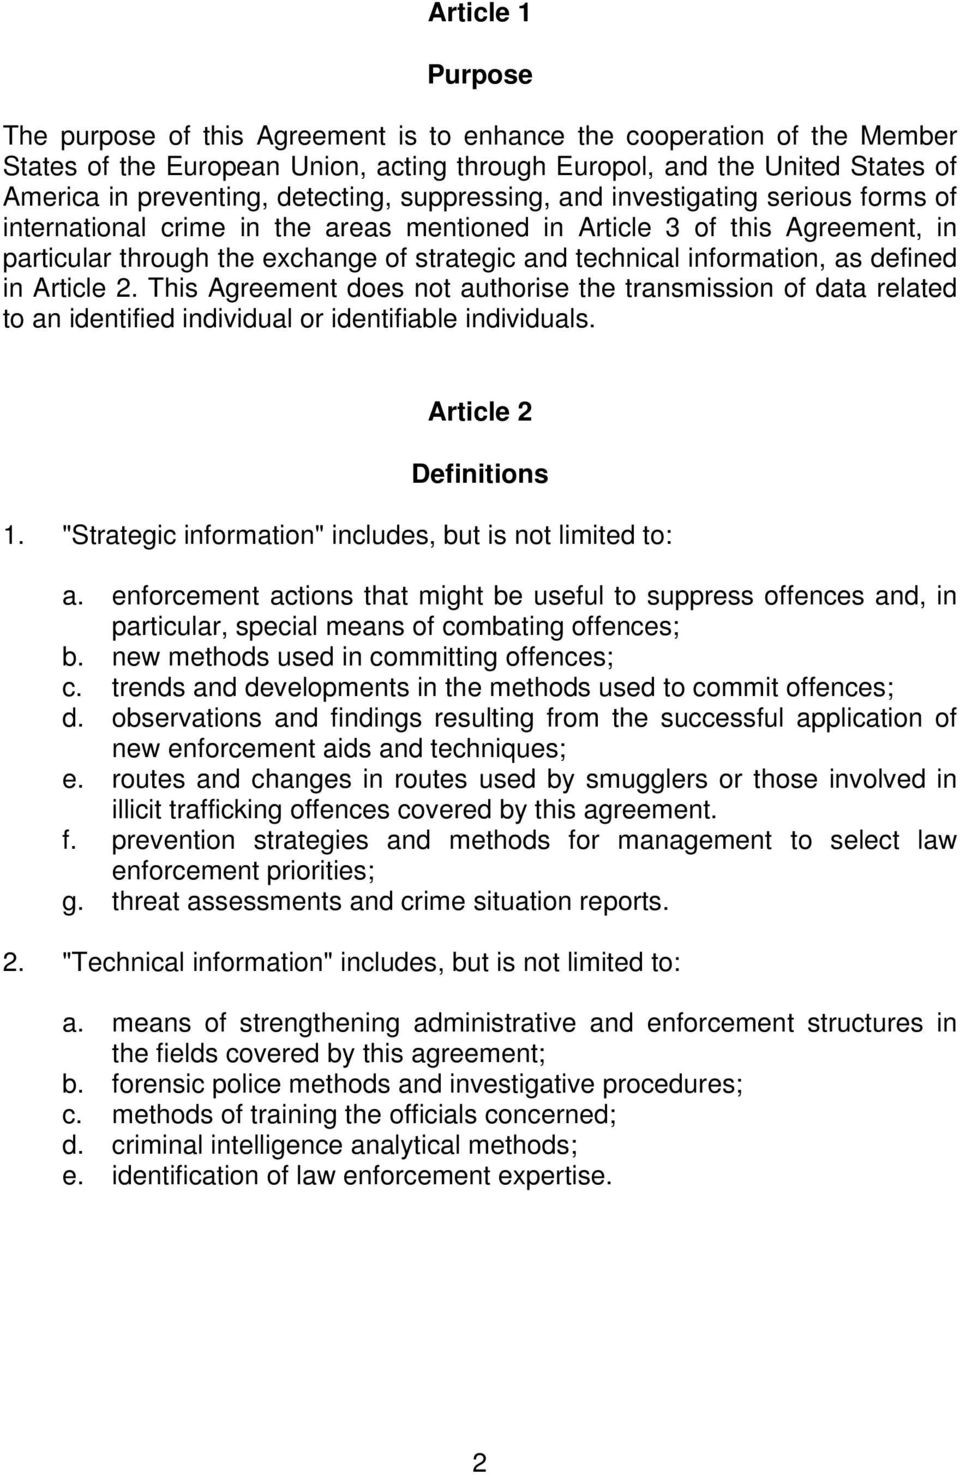 information, as defined in Article 2. This Agreement does not authorise the transmission of data related to an identified individual or identifiable individuals. Article 2 Definitions 1.